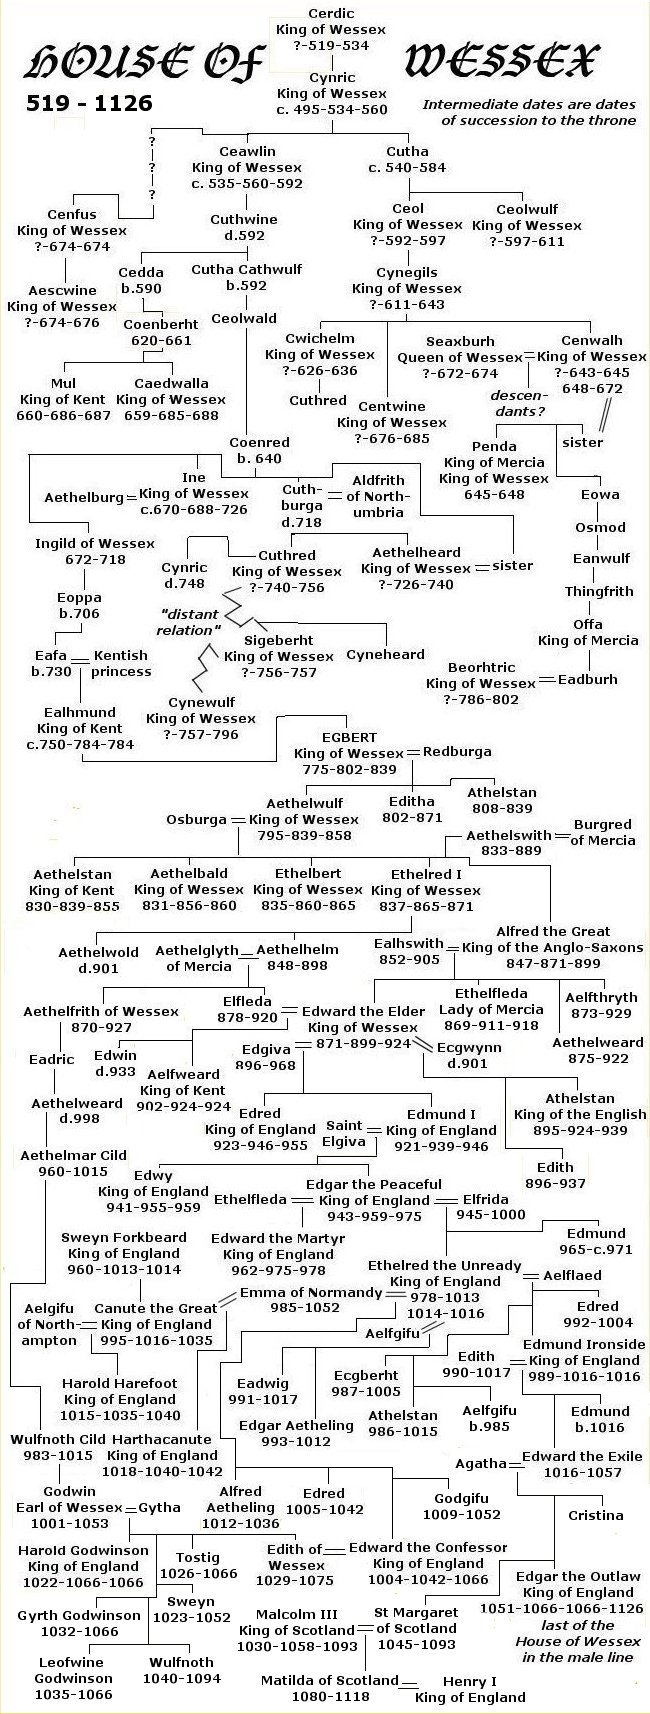 Wessex family tree.jpg